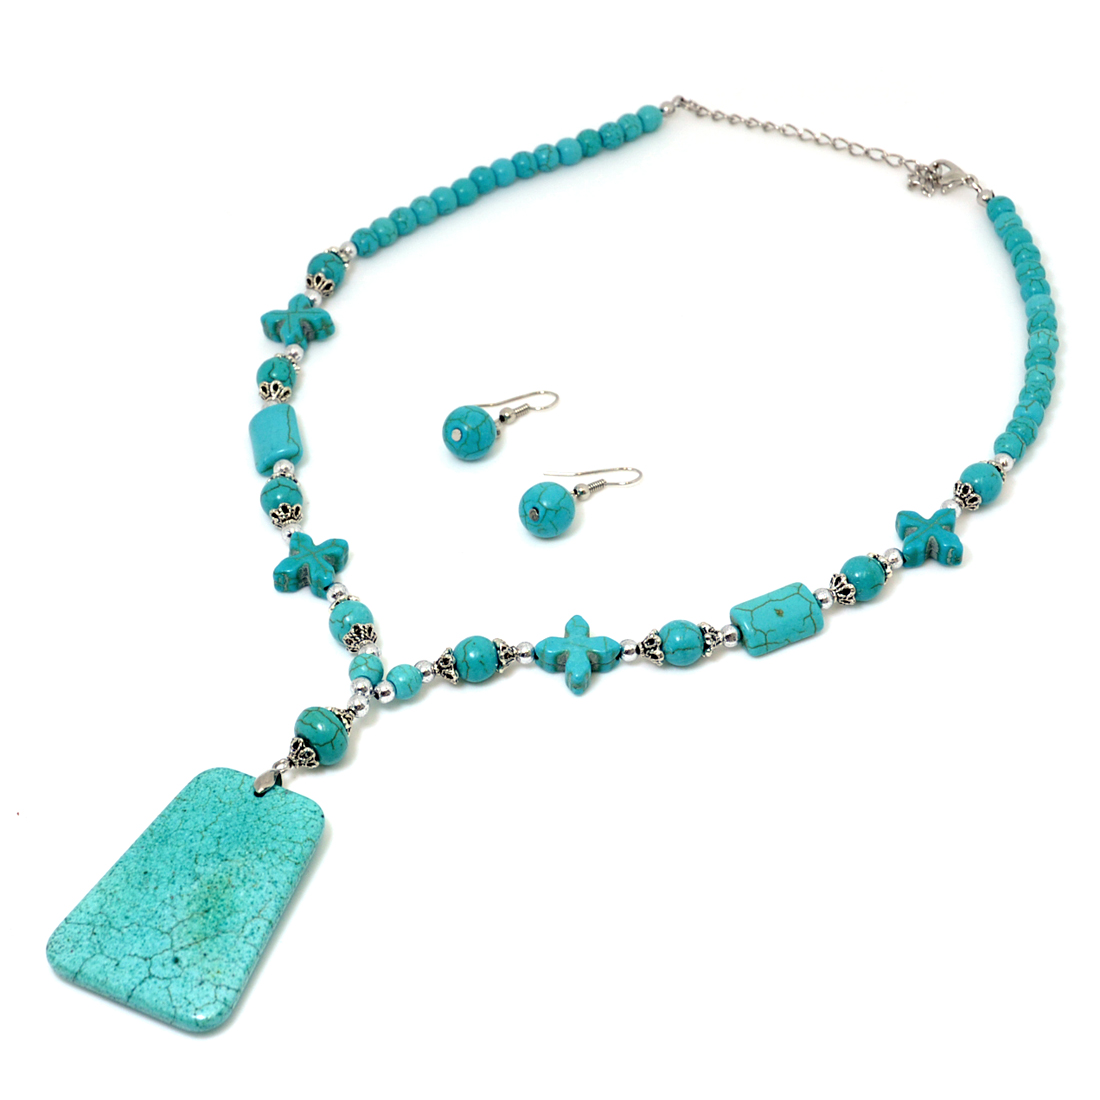 Turquoise Square Pendant with Silver-Tone Accent and Earrings